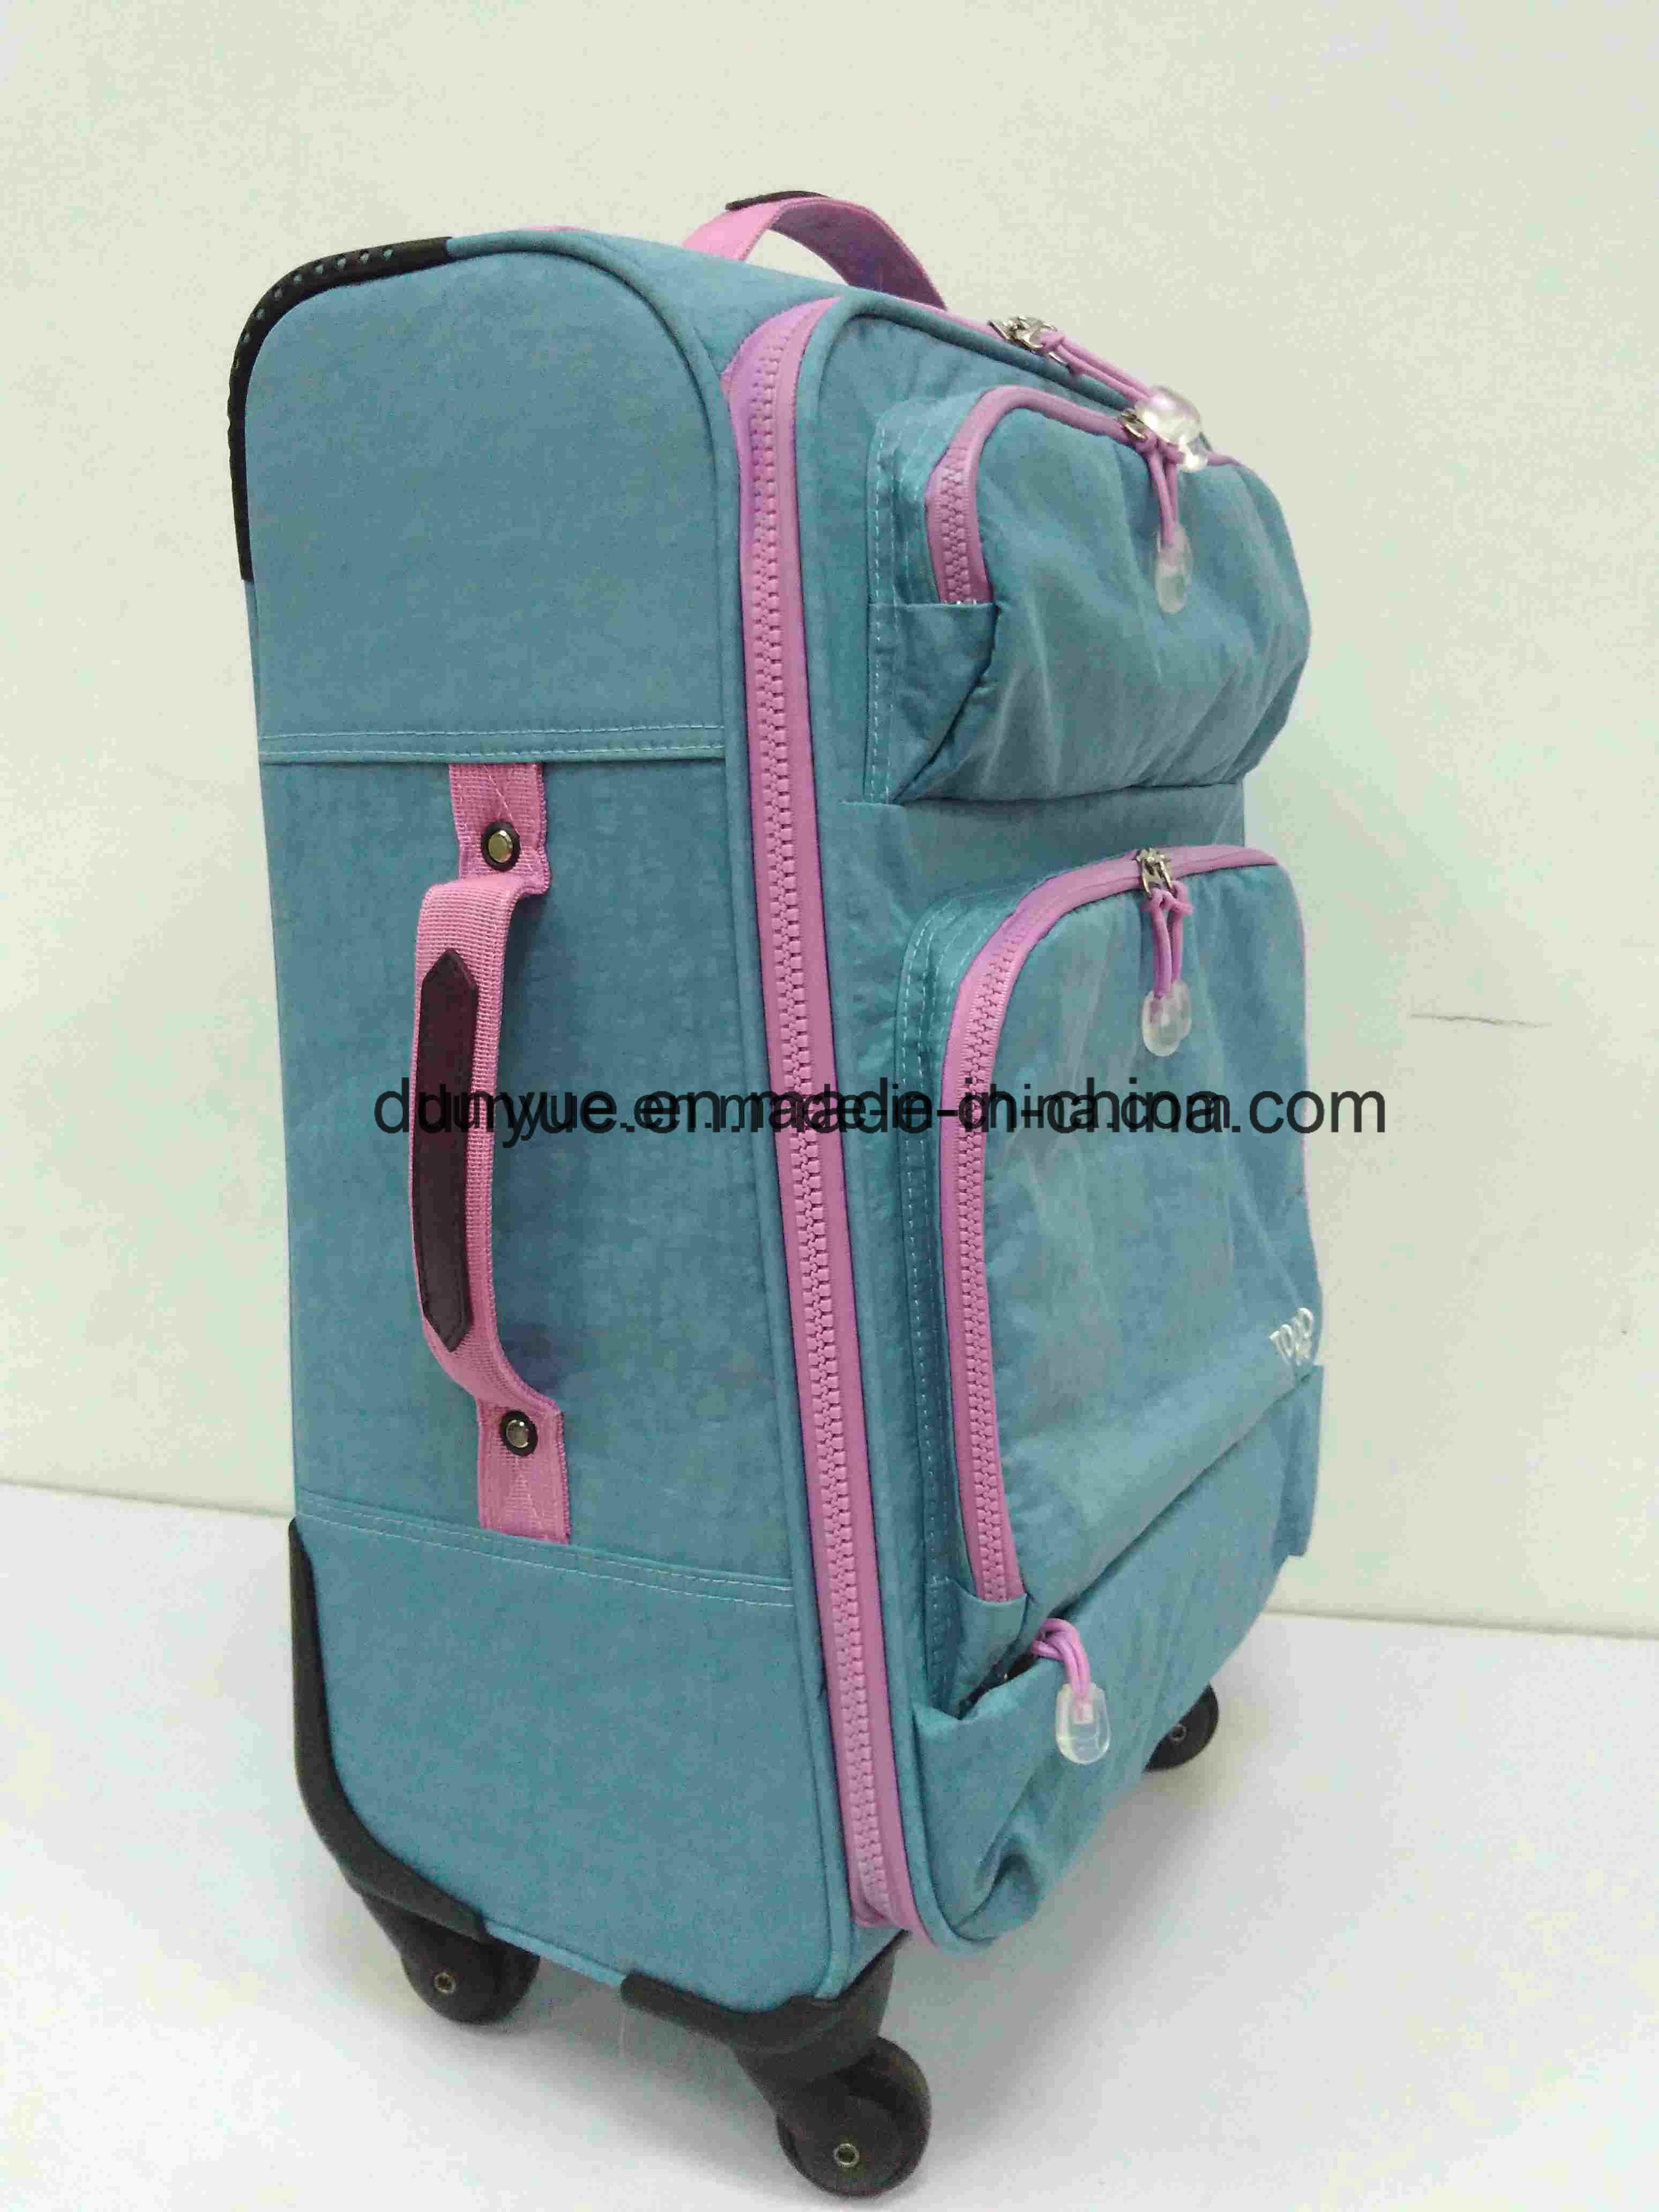 Factory Supplier Durable Washer Wrinkle Fabric Luggage Bag, Custom Low MOQ Travel Suitcase with Wheels